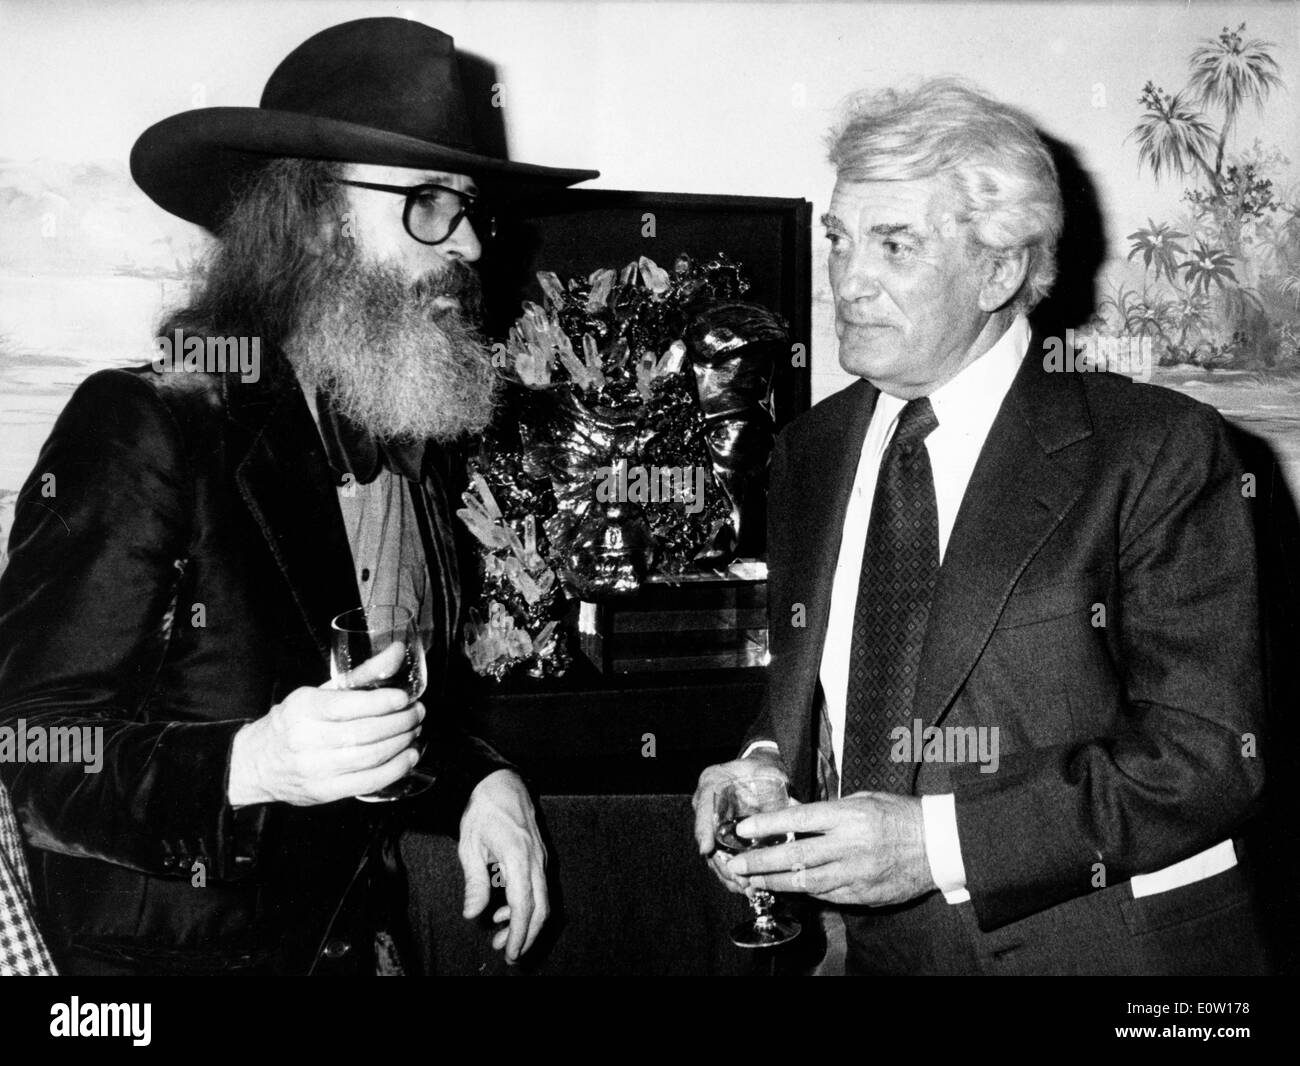 Actor Jean Marais talking to a bearded man - Stock Image